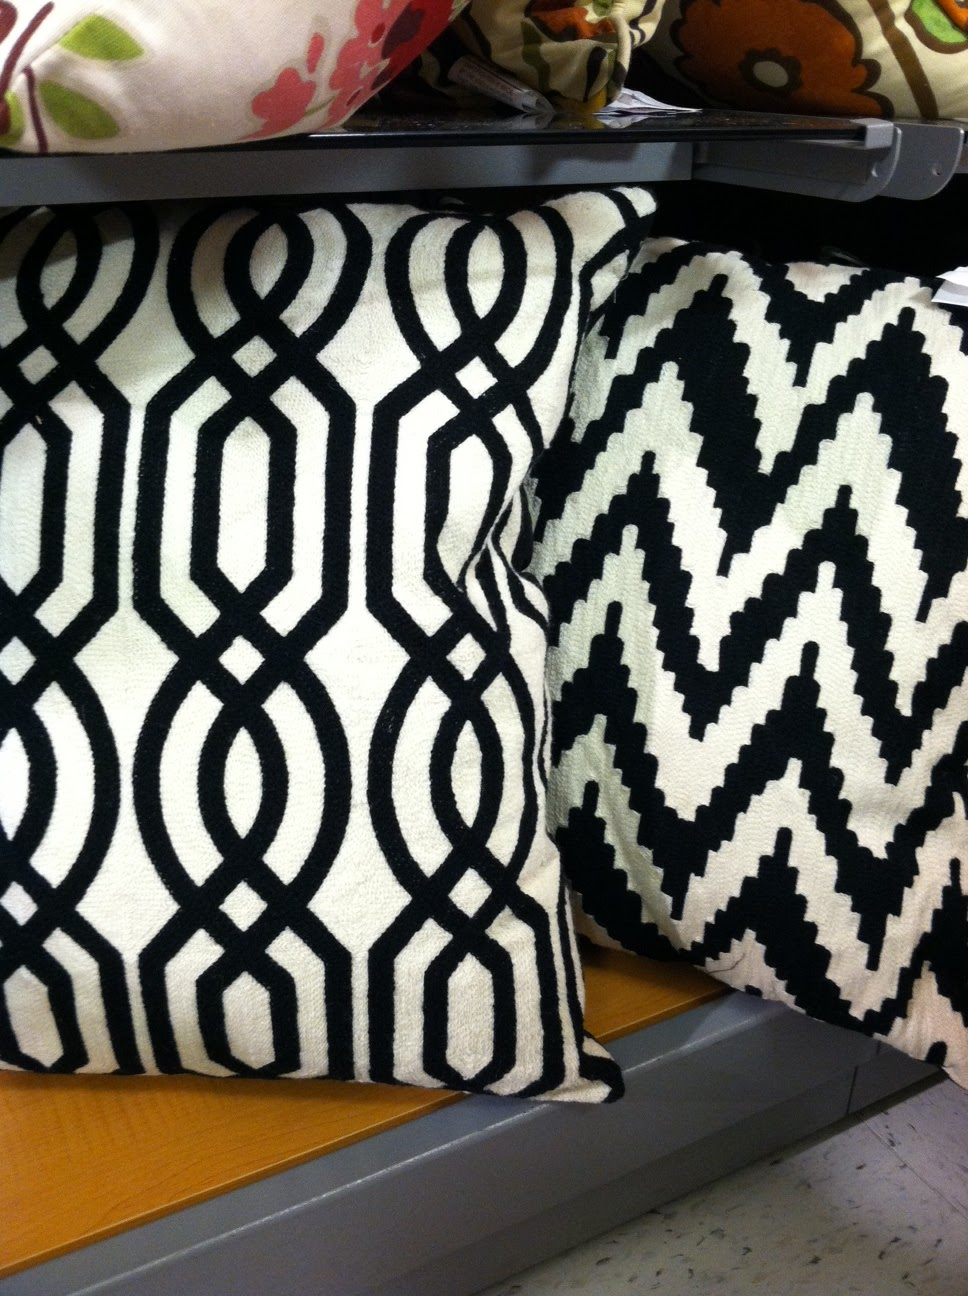 Domain Decorative Pillows Tj Maxx : sarah m. dorsey designs: TJ Maxx Finds